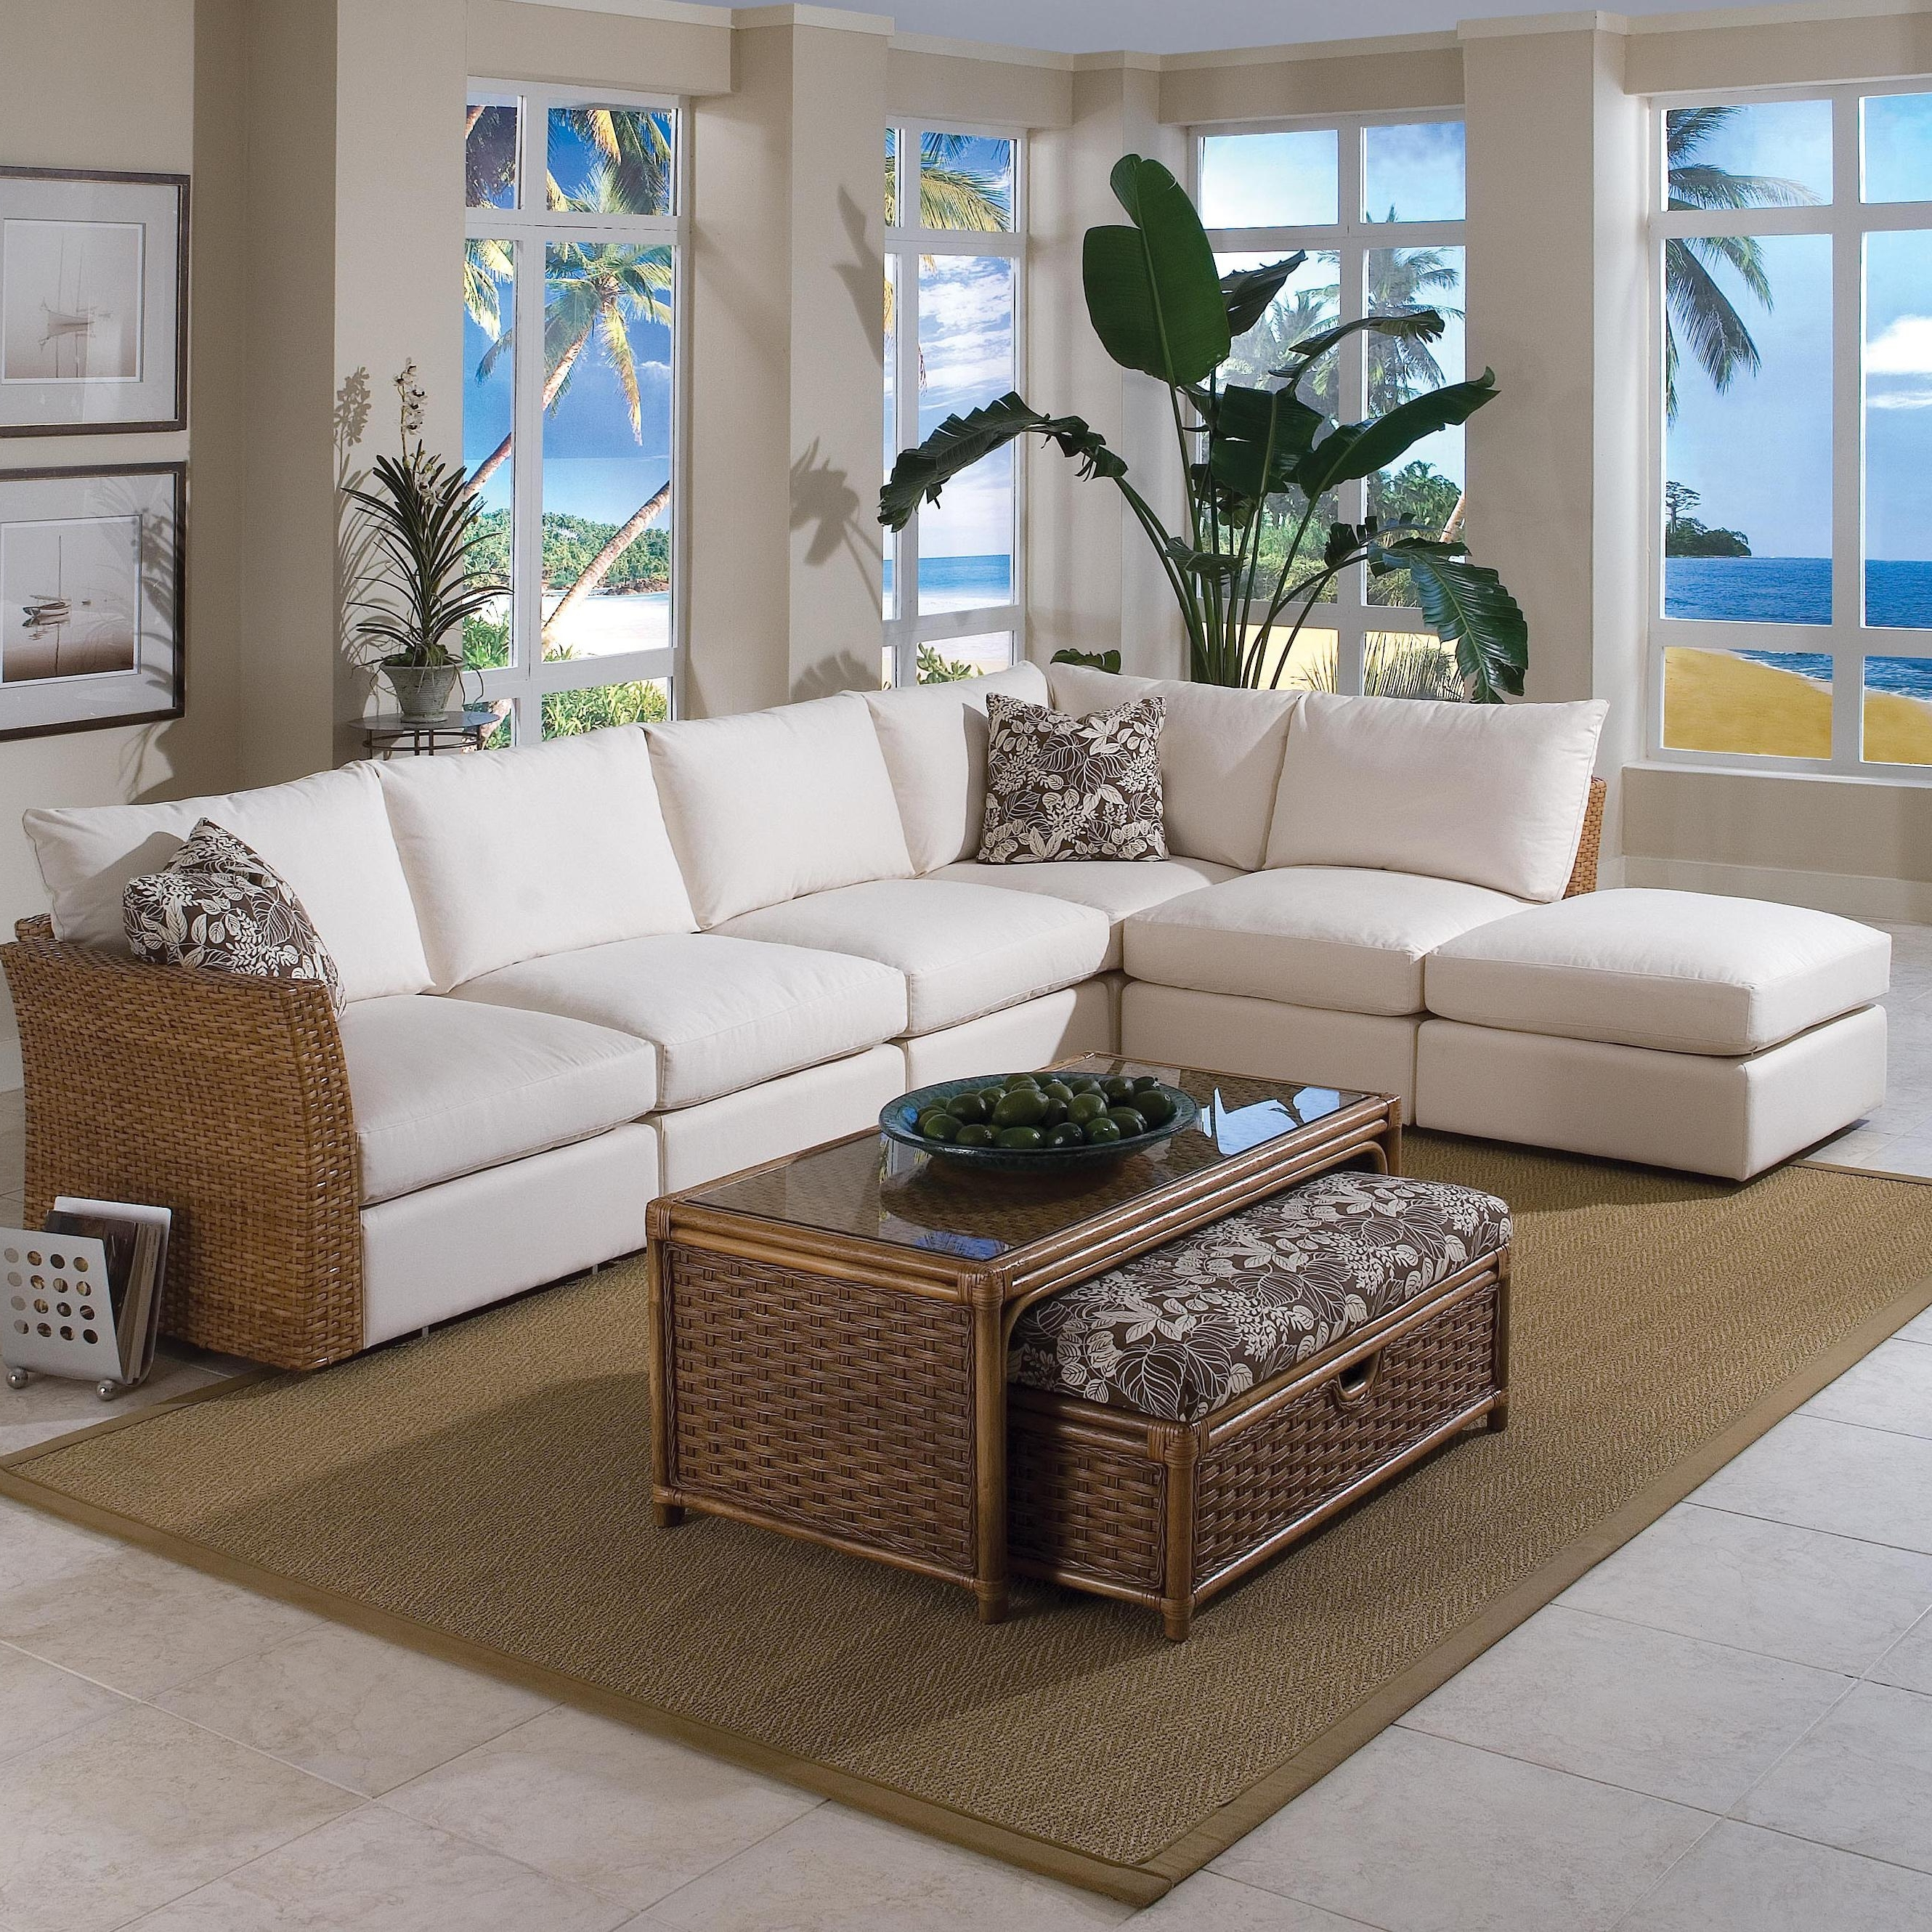 Braxton Culler Grand Water Point Tropical Sectional Sofa With Two Within Favorite Wilmington Nc Sectional Sofas (View 4 of 15)